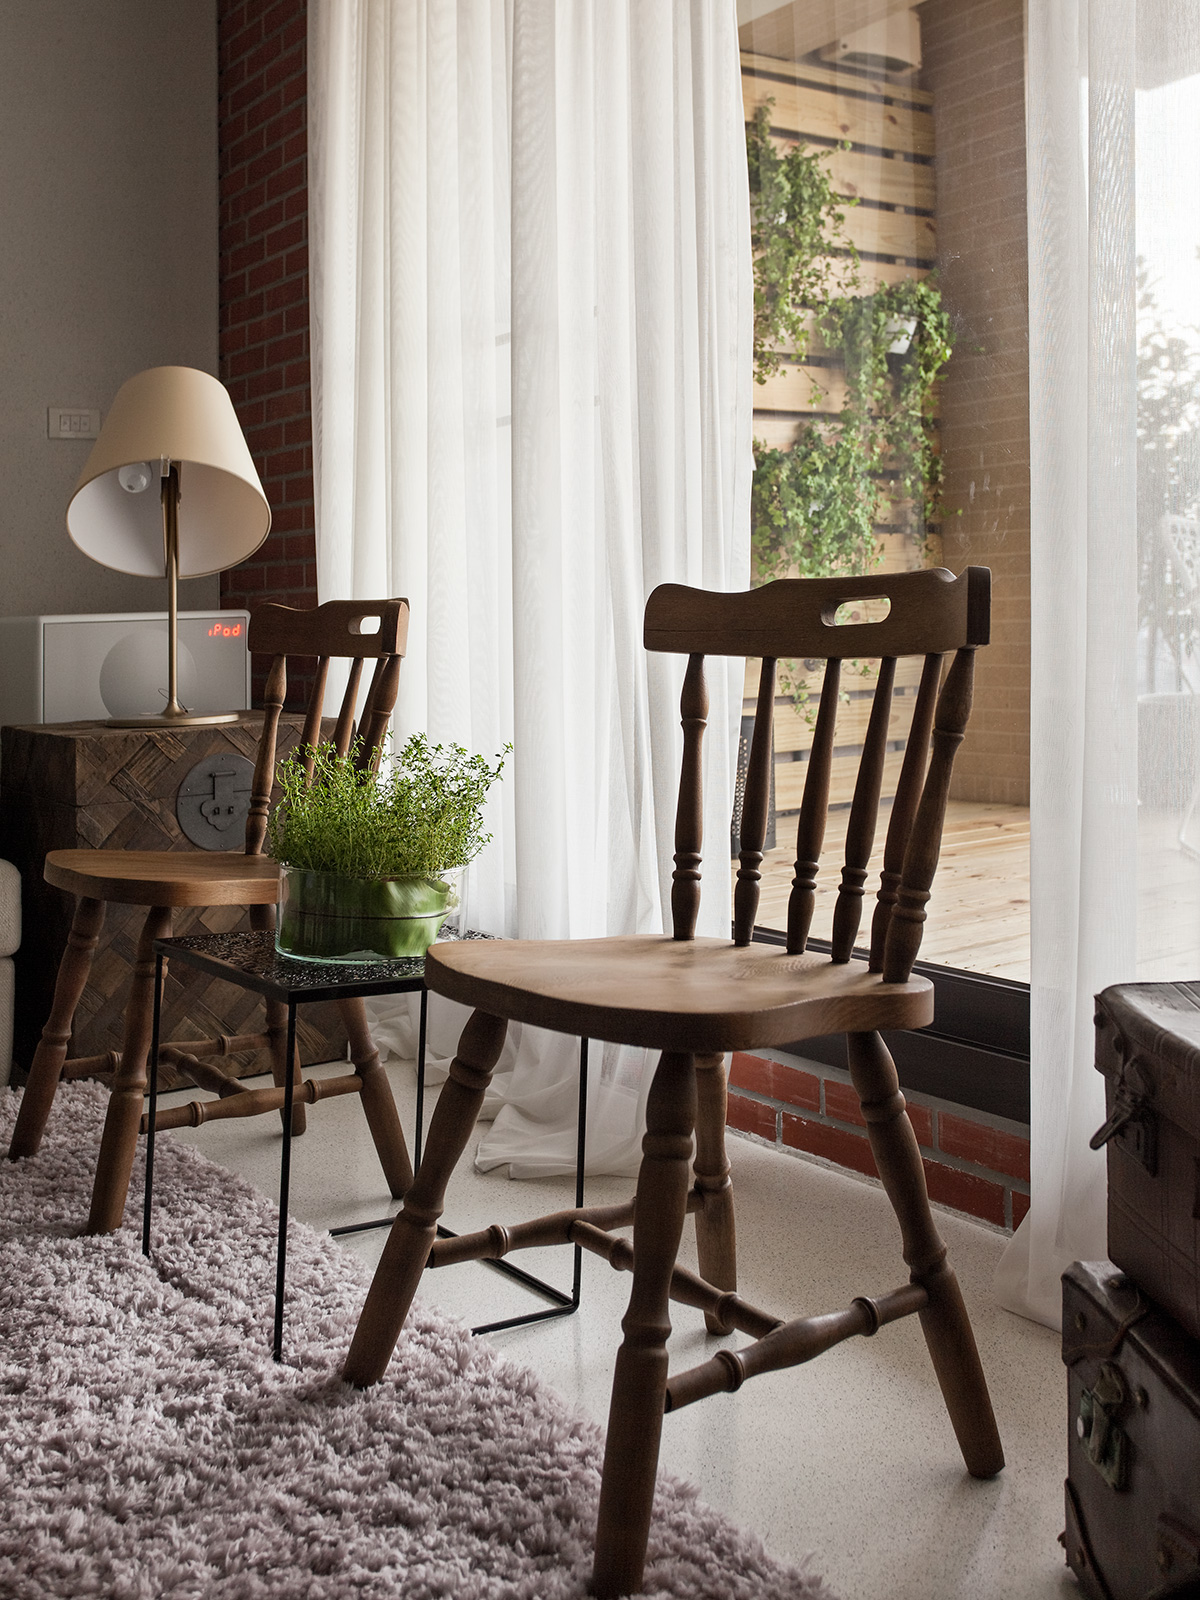 2 Beautifully Modern Minimalist Asian Designs: Antique Chairs In Front Of Window